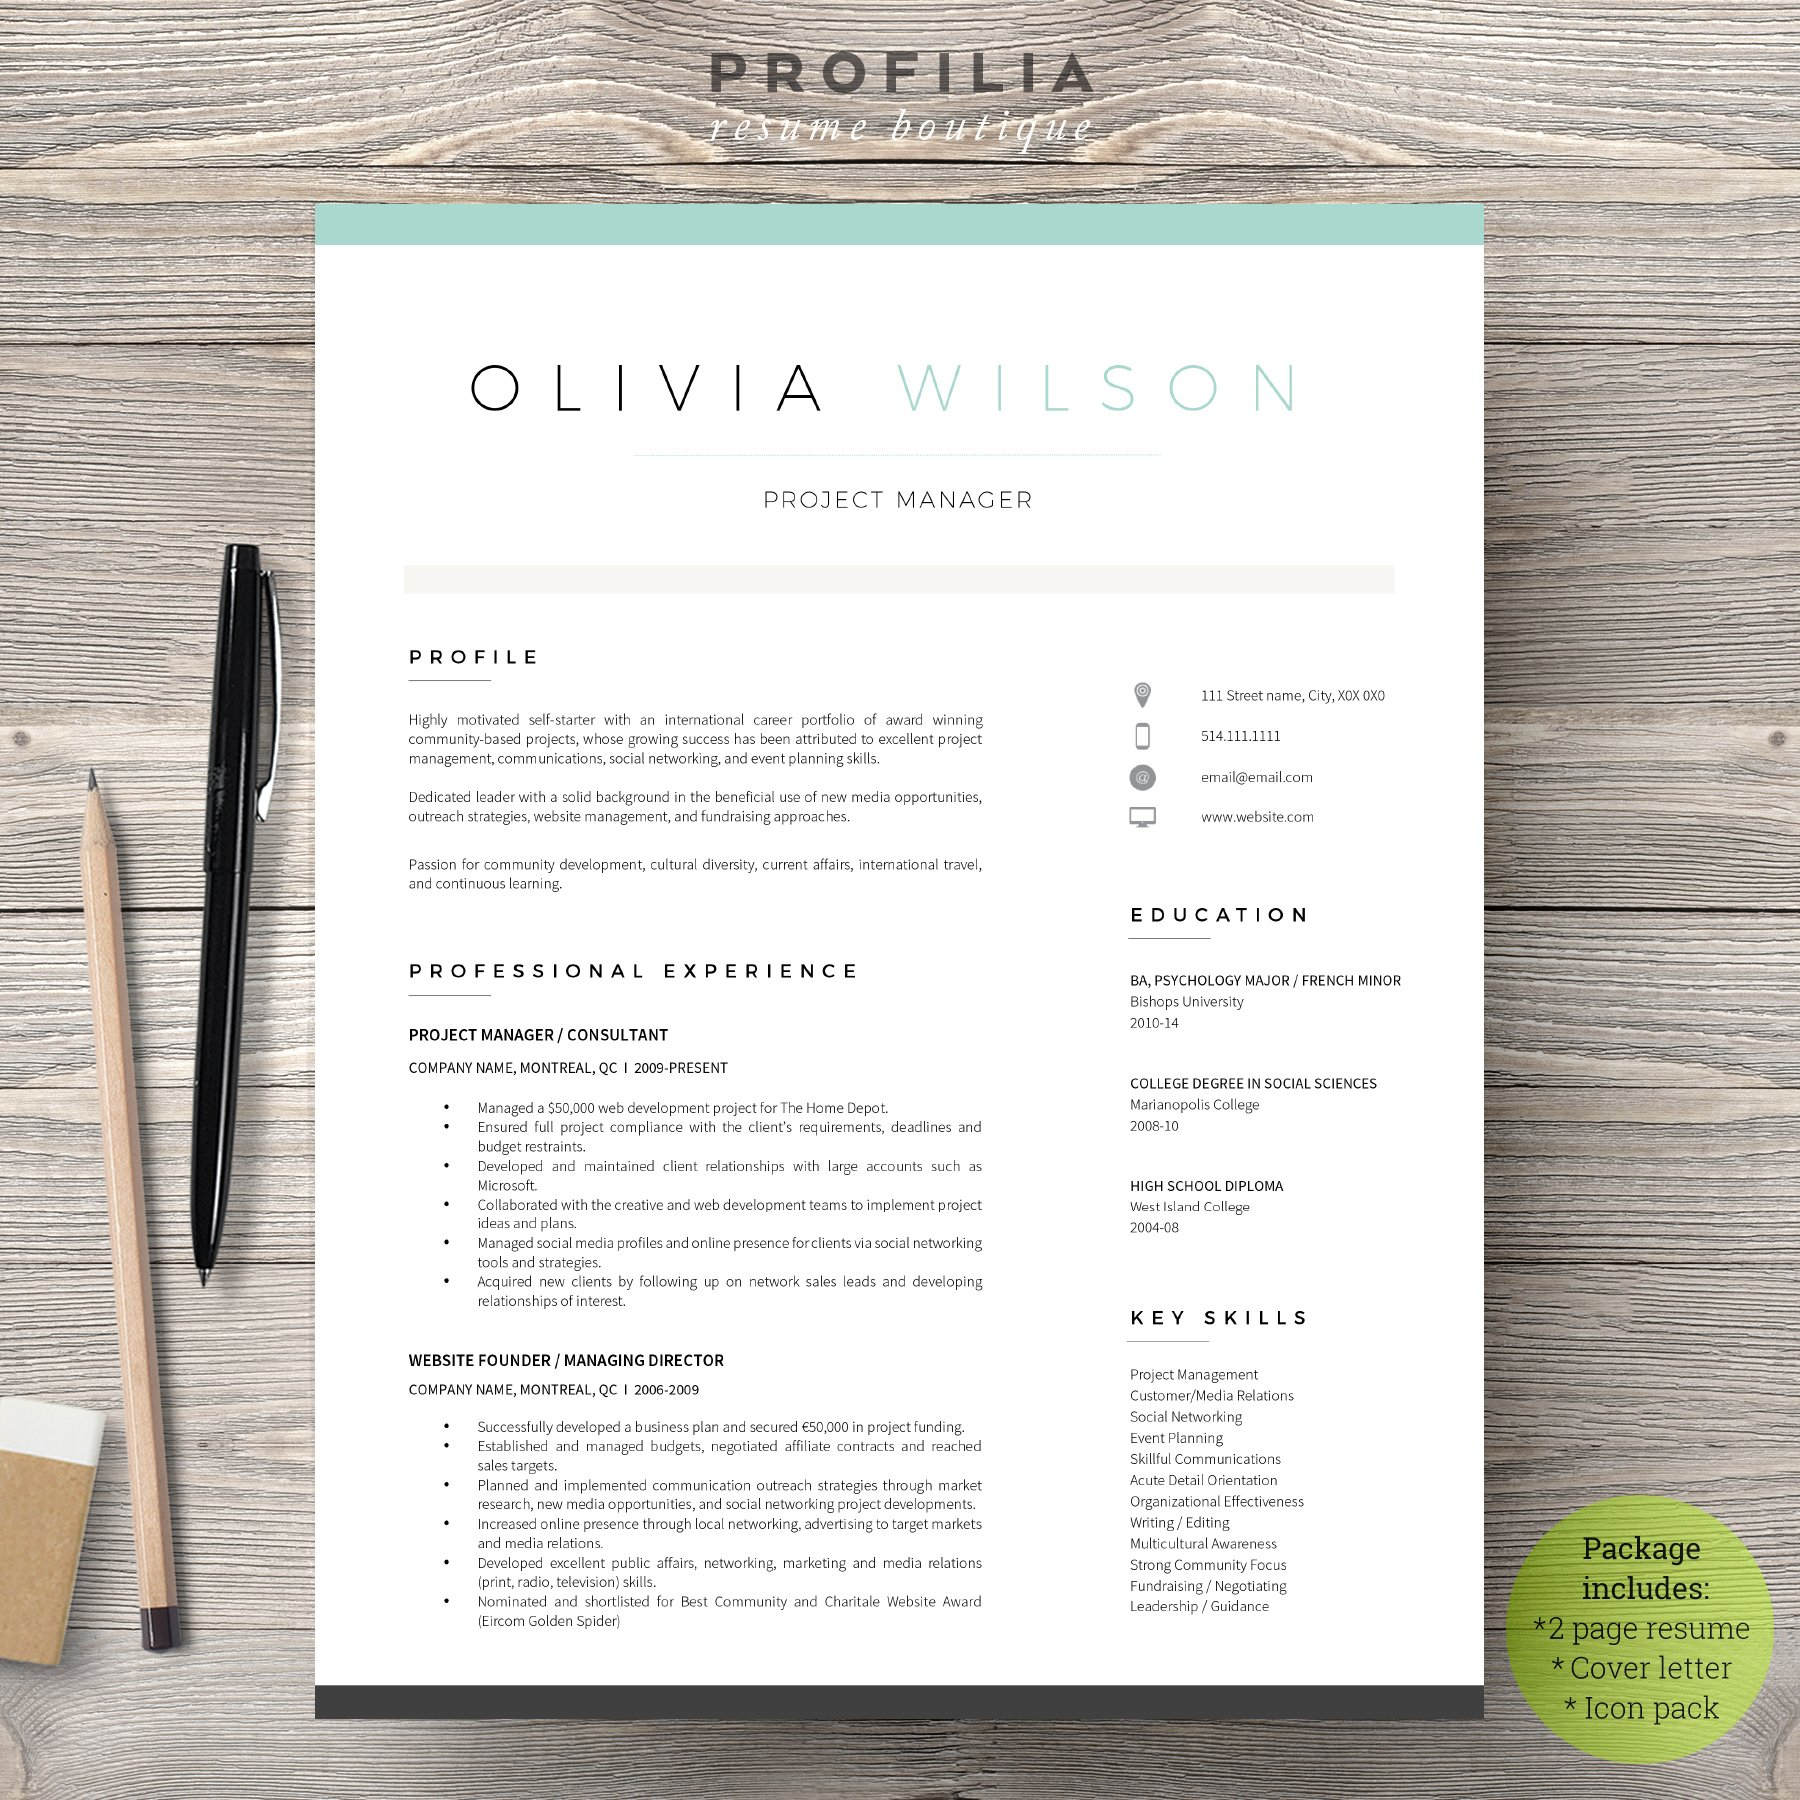 Word resume cover letter template resume templates creative market yelopaper Image collections